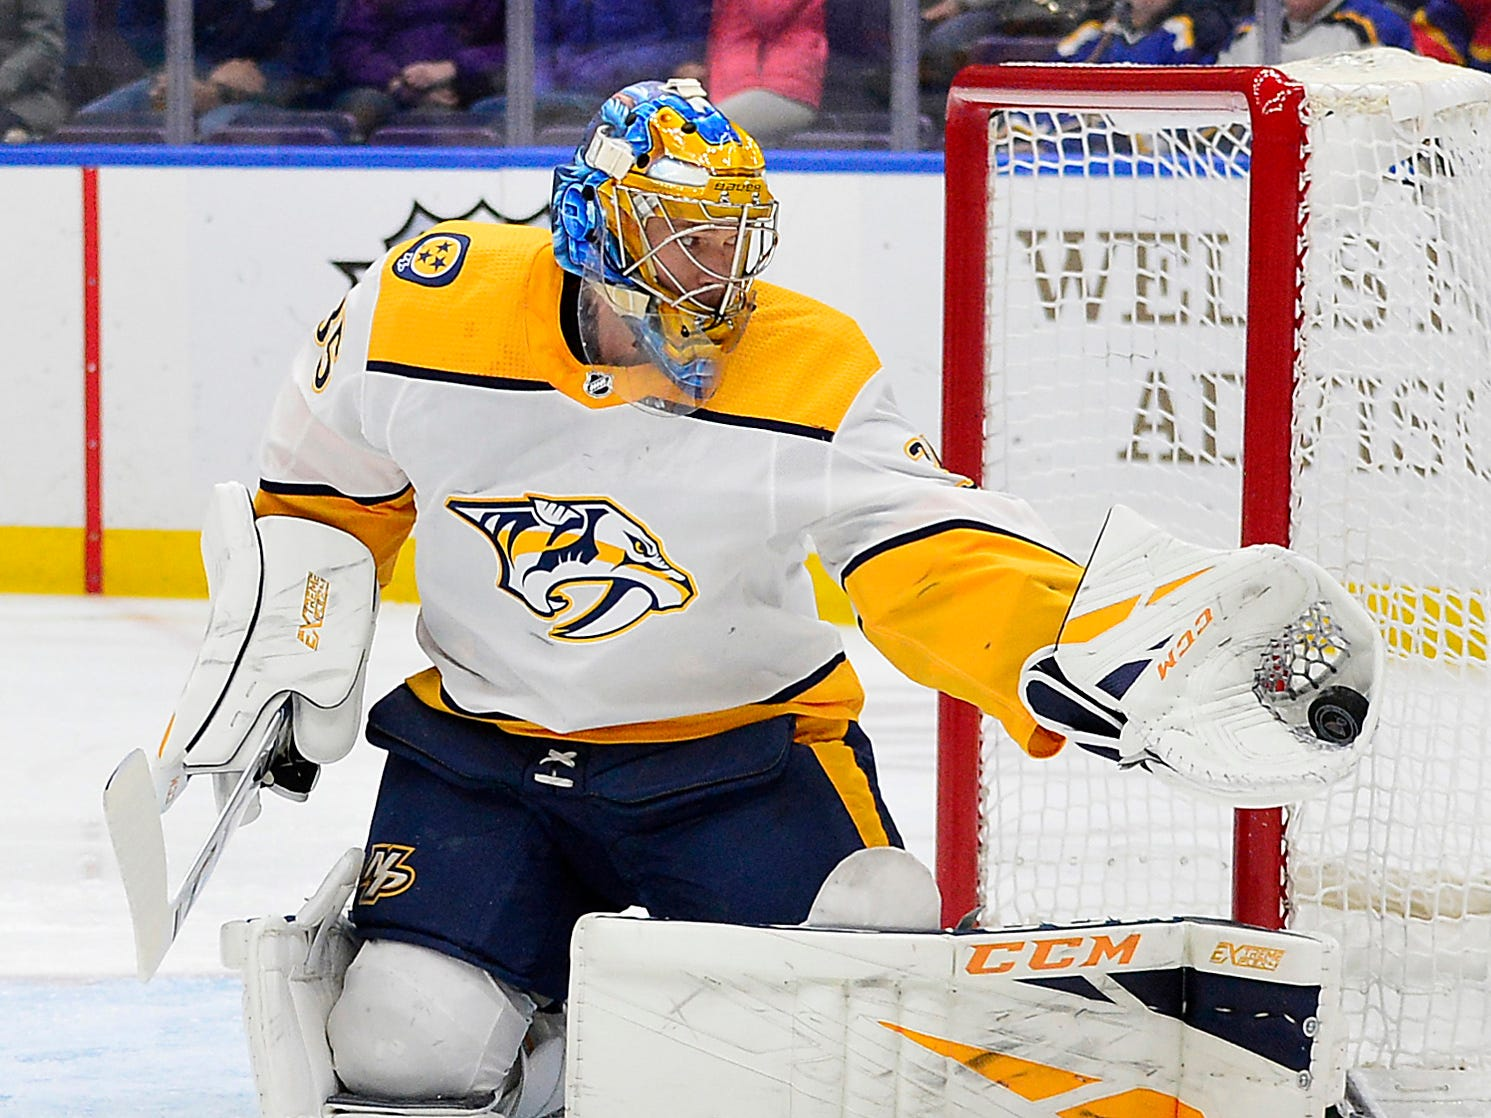 Nashville Predators goaltender Pekka Rinne (35) makes a glove save during the first period against the St. Louis Blues at Enterprise Center.